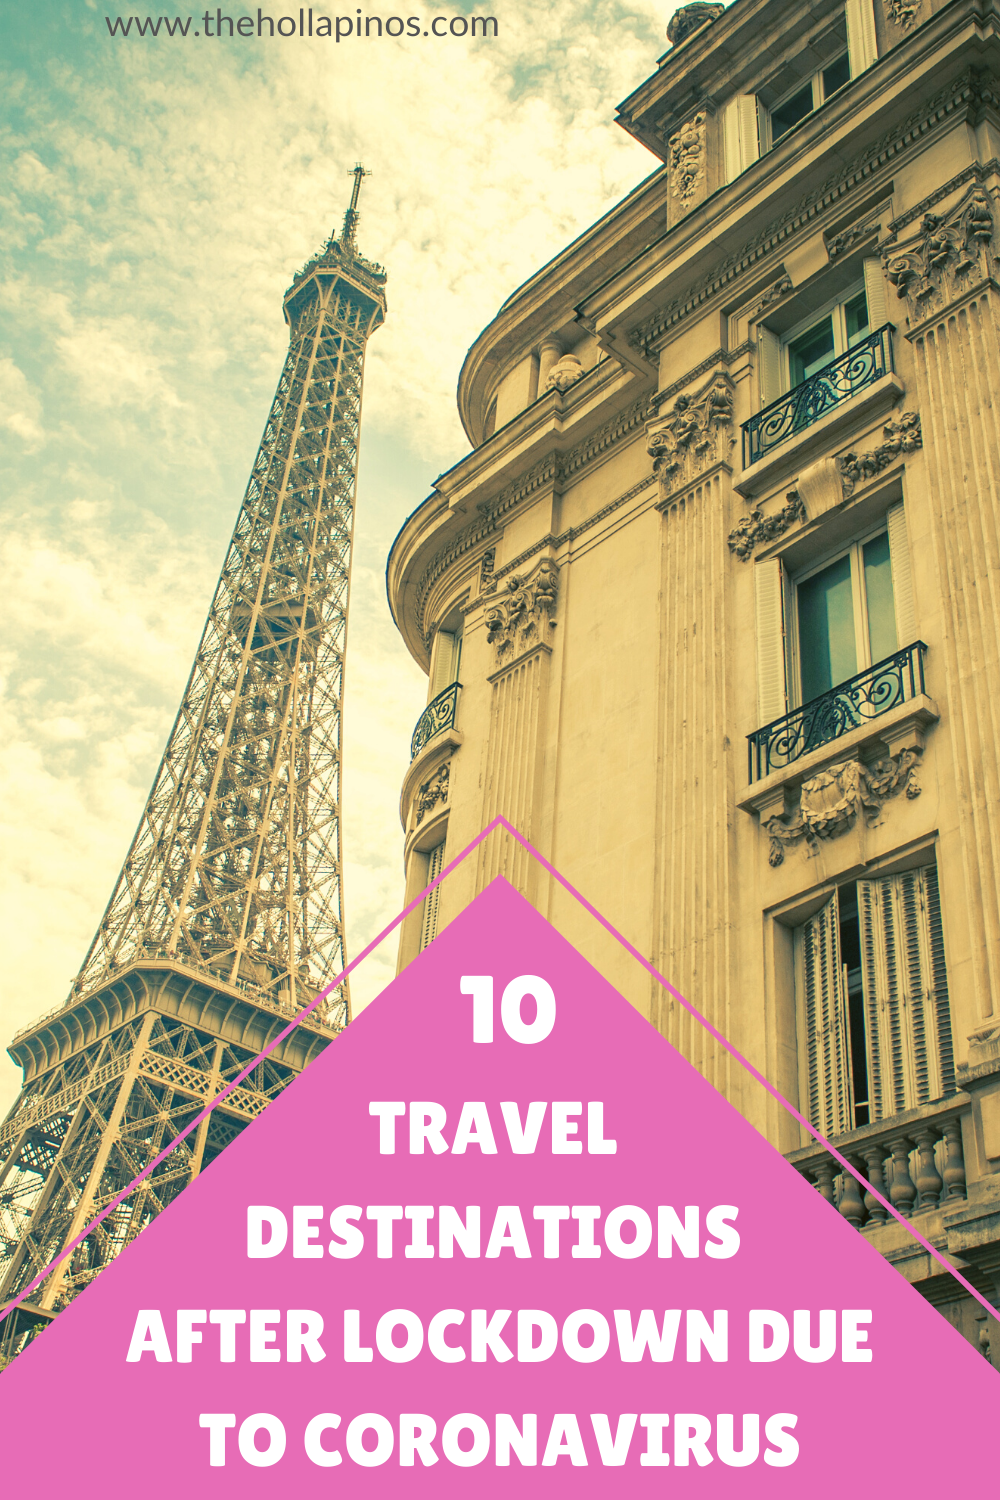 List of countries to visit after the travel restrictions have been lifted due to coronavirus #travelbucketlist #travelgoals #coronavirus #travelrestrictions